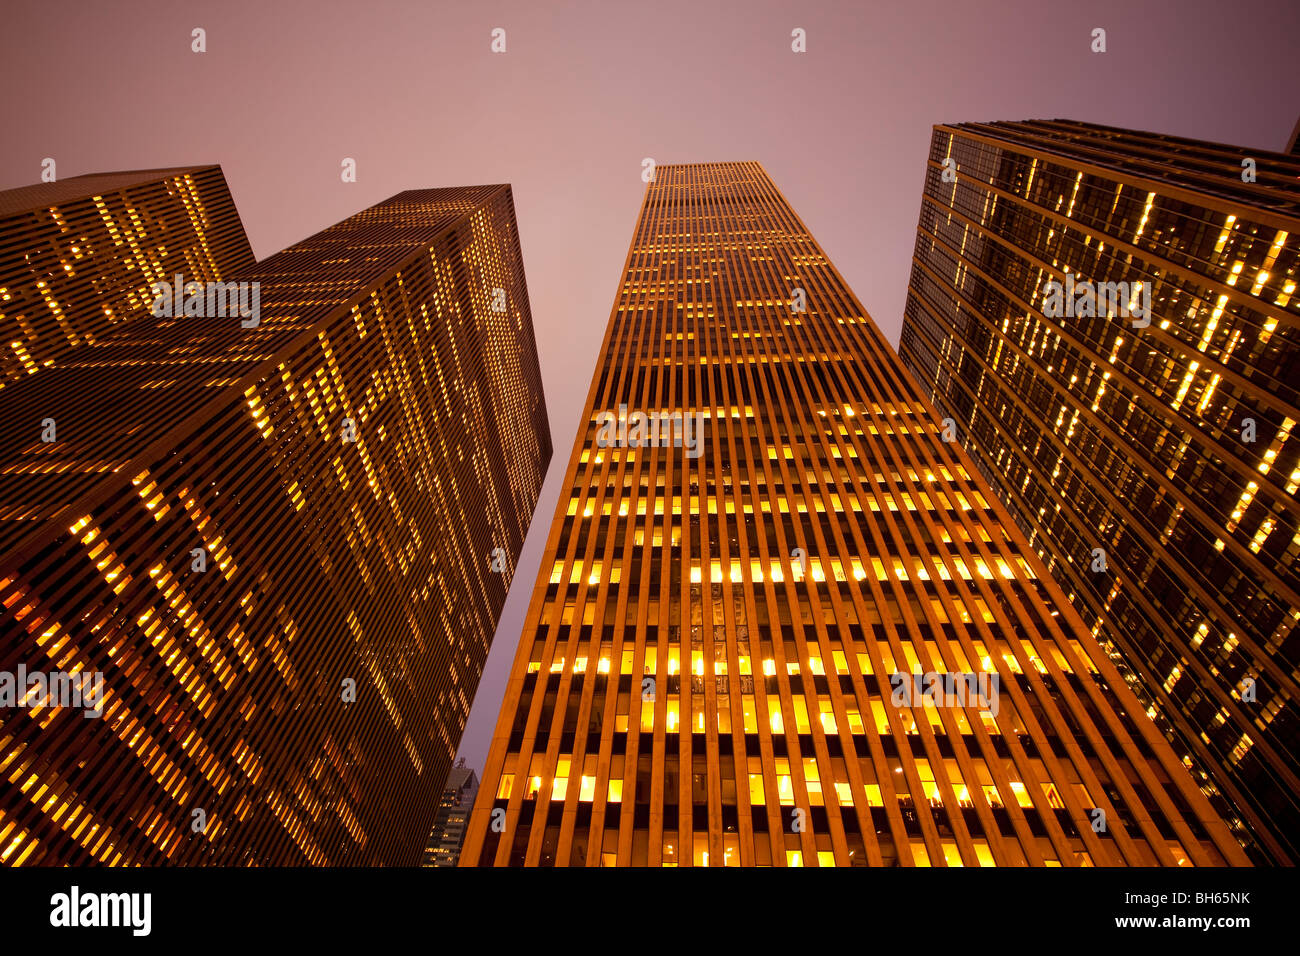 USA, New York City, Manhattan, Hochhäuser entlang der Sixth Avenue Stockbild